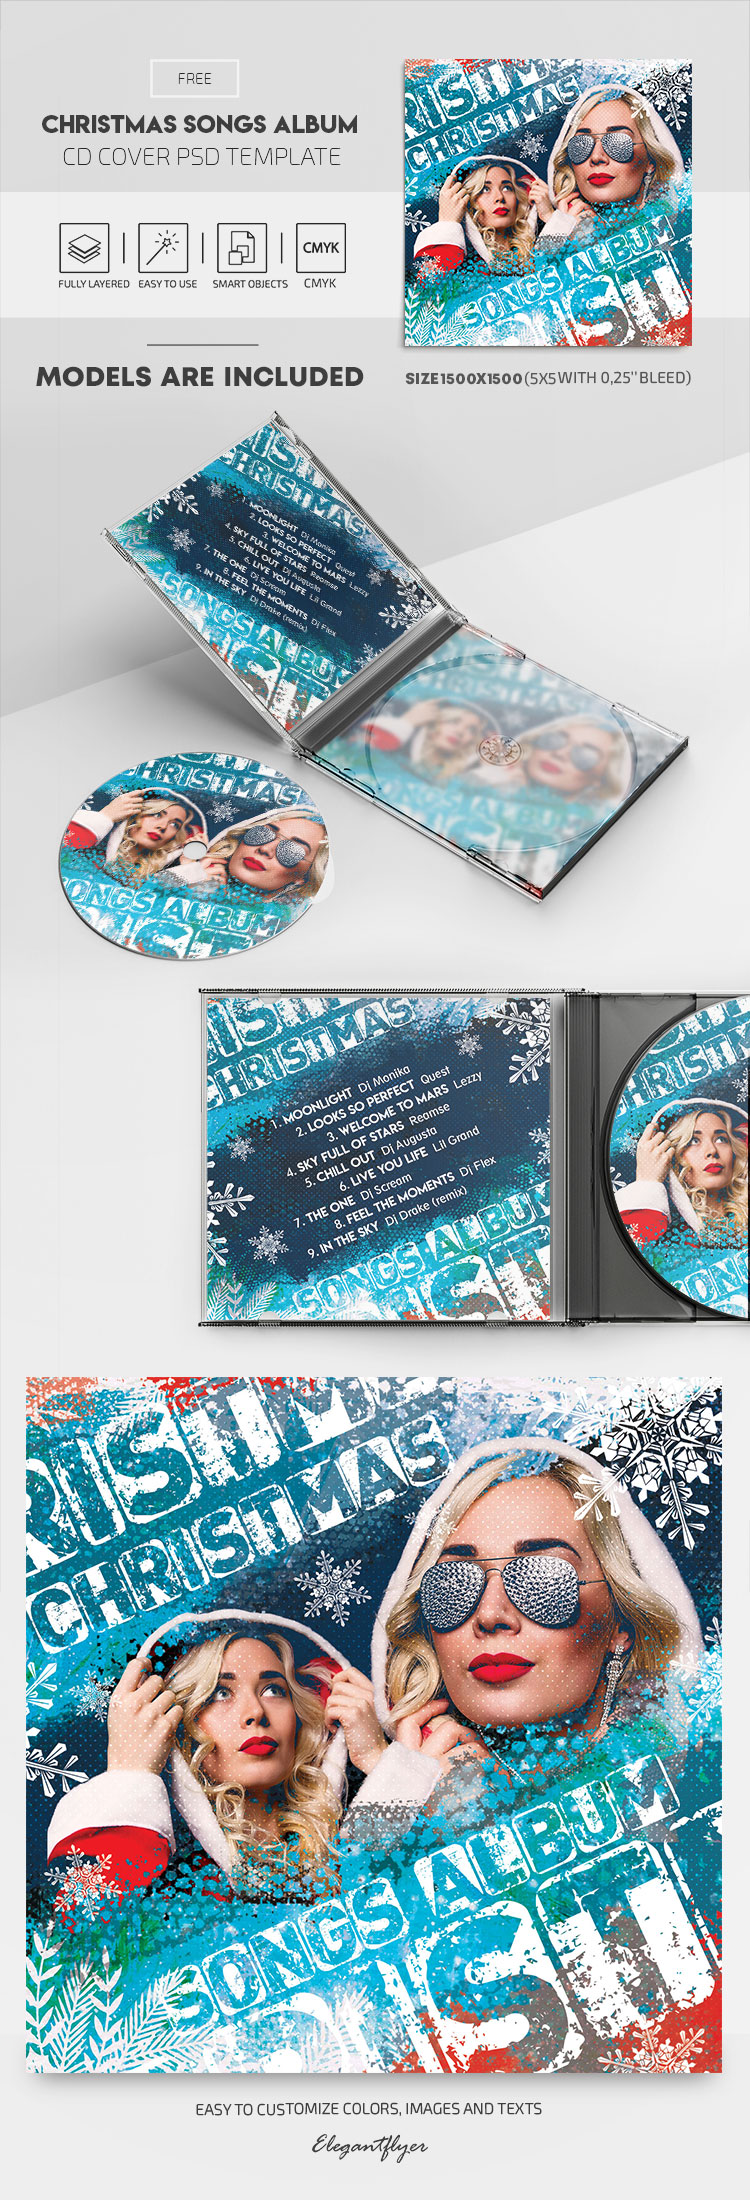 Christmas Songs – Free CD Cover PSD Template